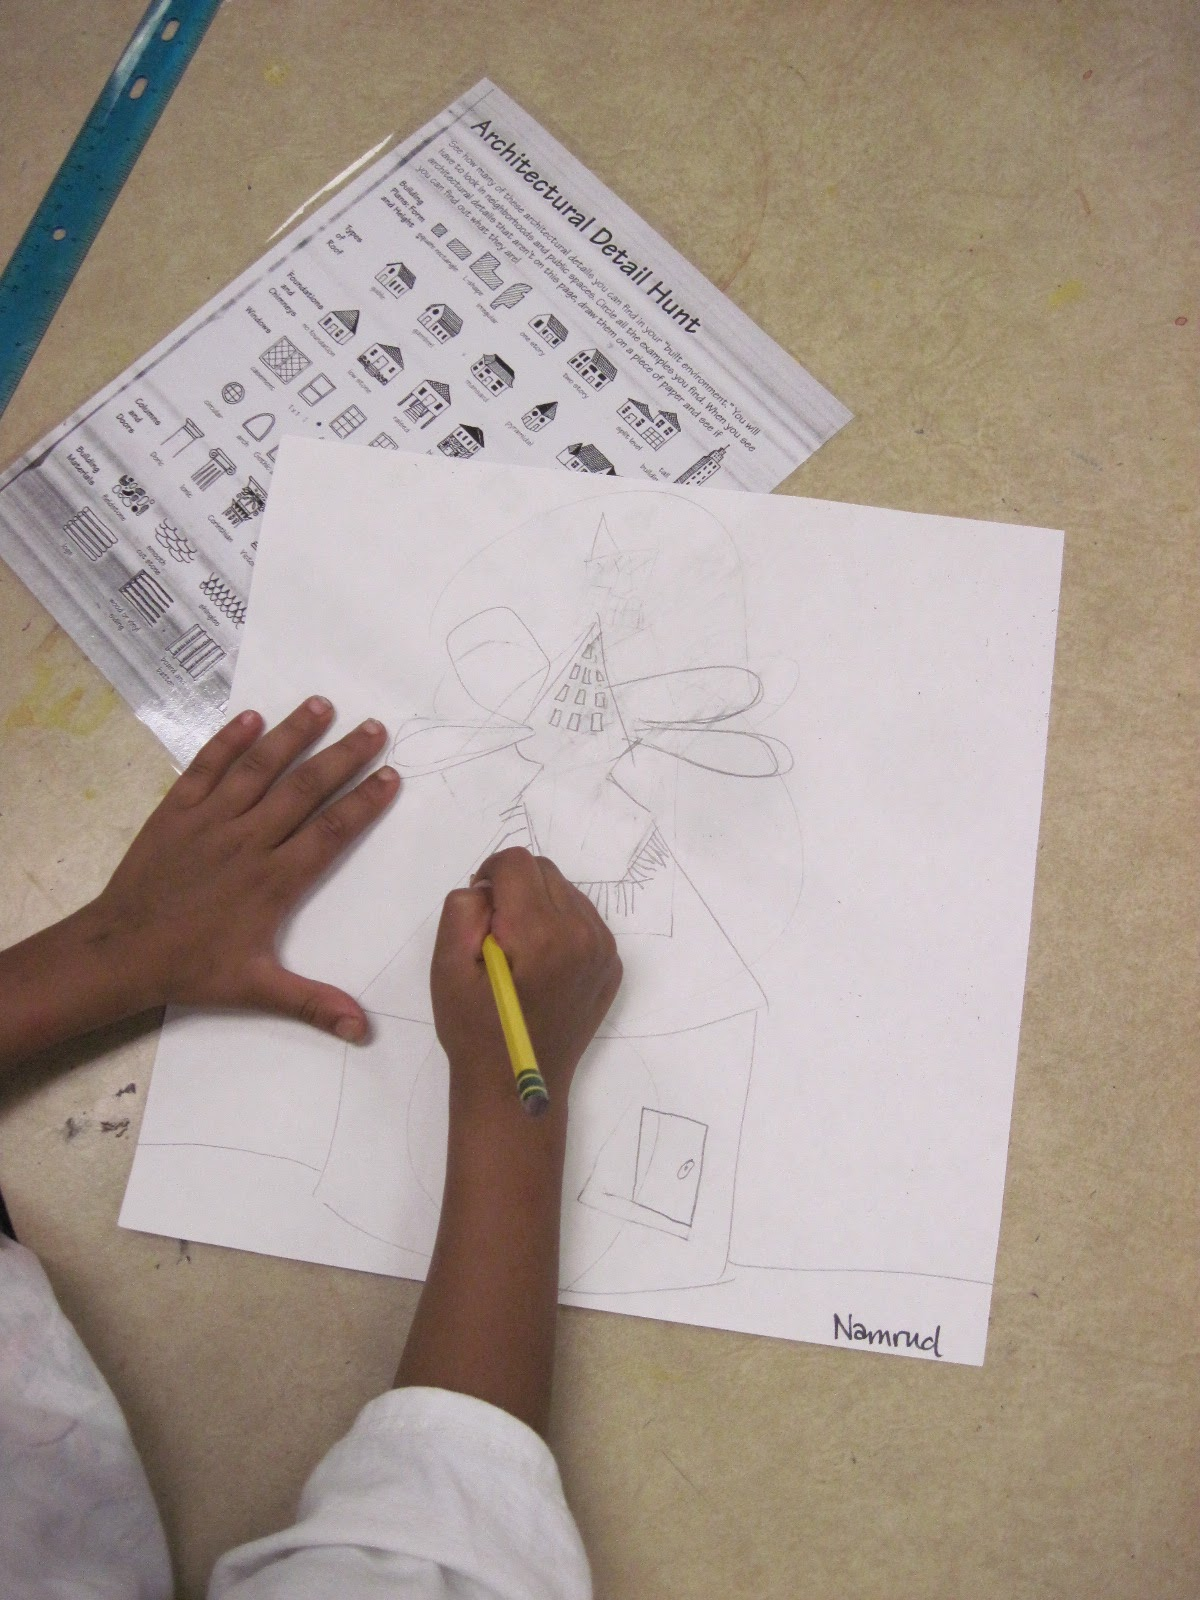 Chumleyscobey Art Room 1st Grade Architects Create Houses